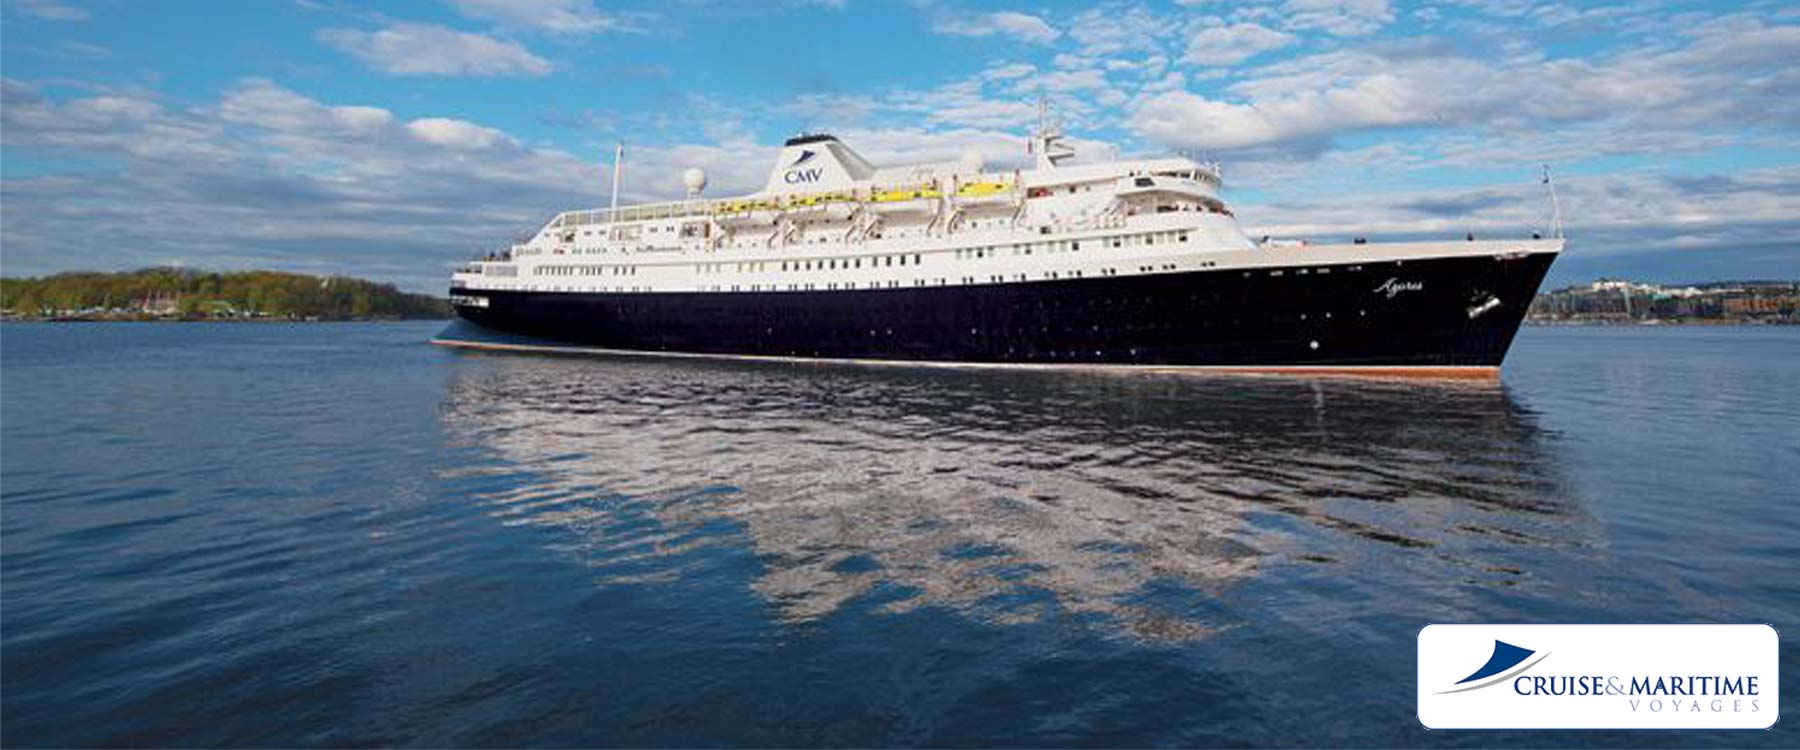 Cruise and Maritime Voyages' Astoria Ship to sail in Puerto Penasco Mexico (Rocky Point).